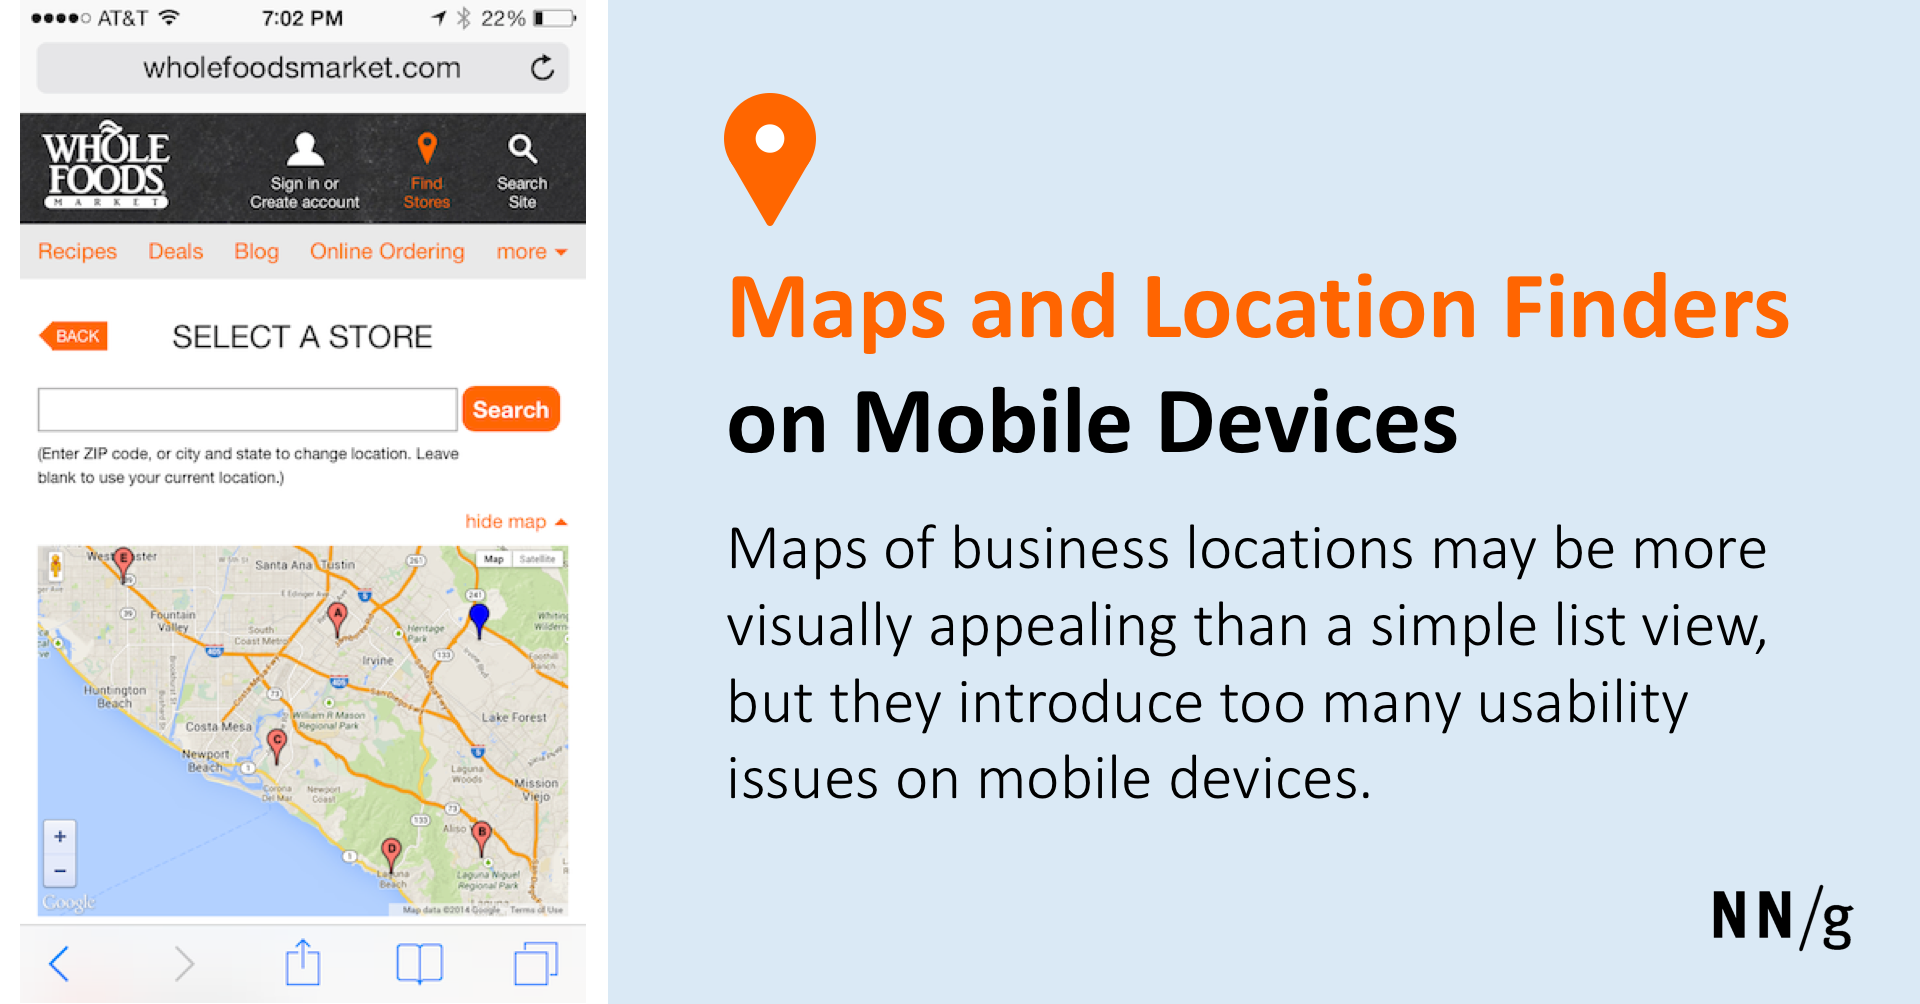 Maps and Location Finders on Mobile Devices